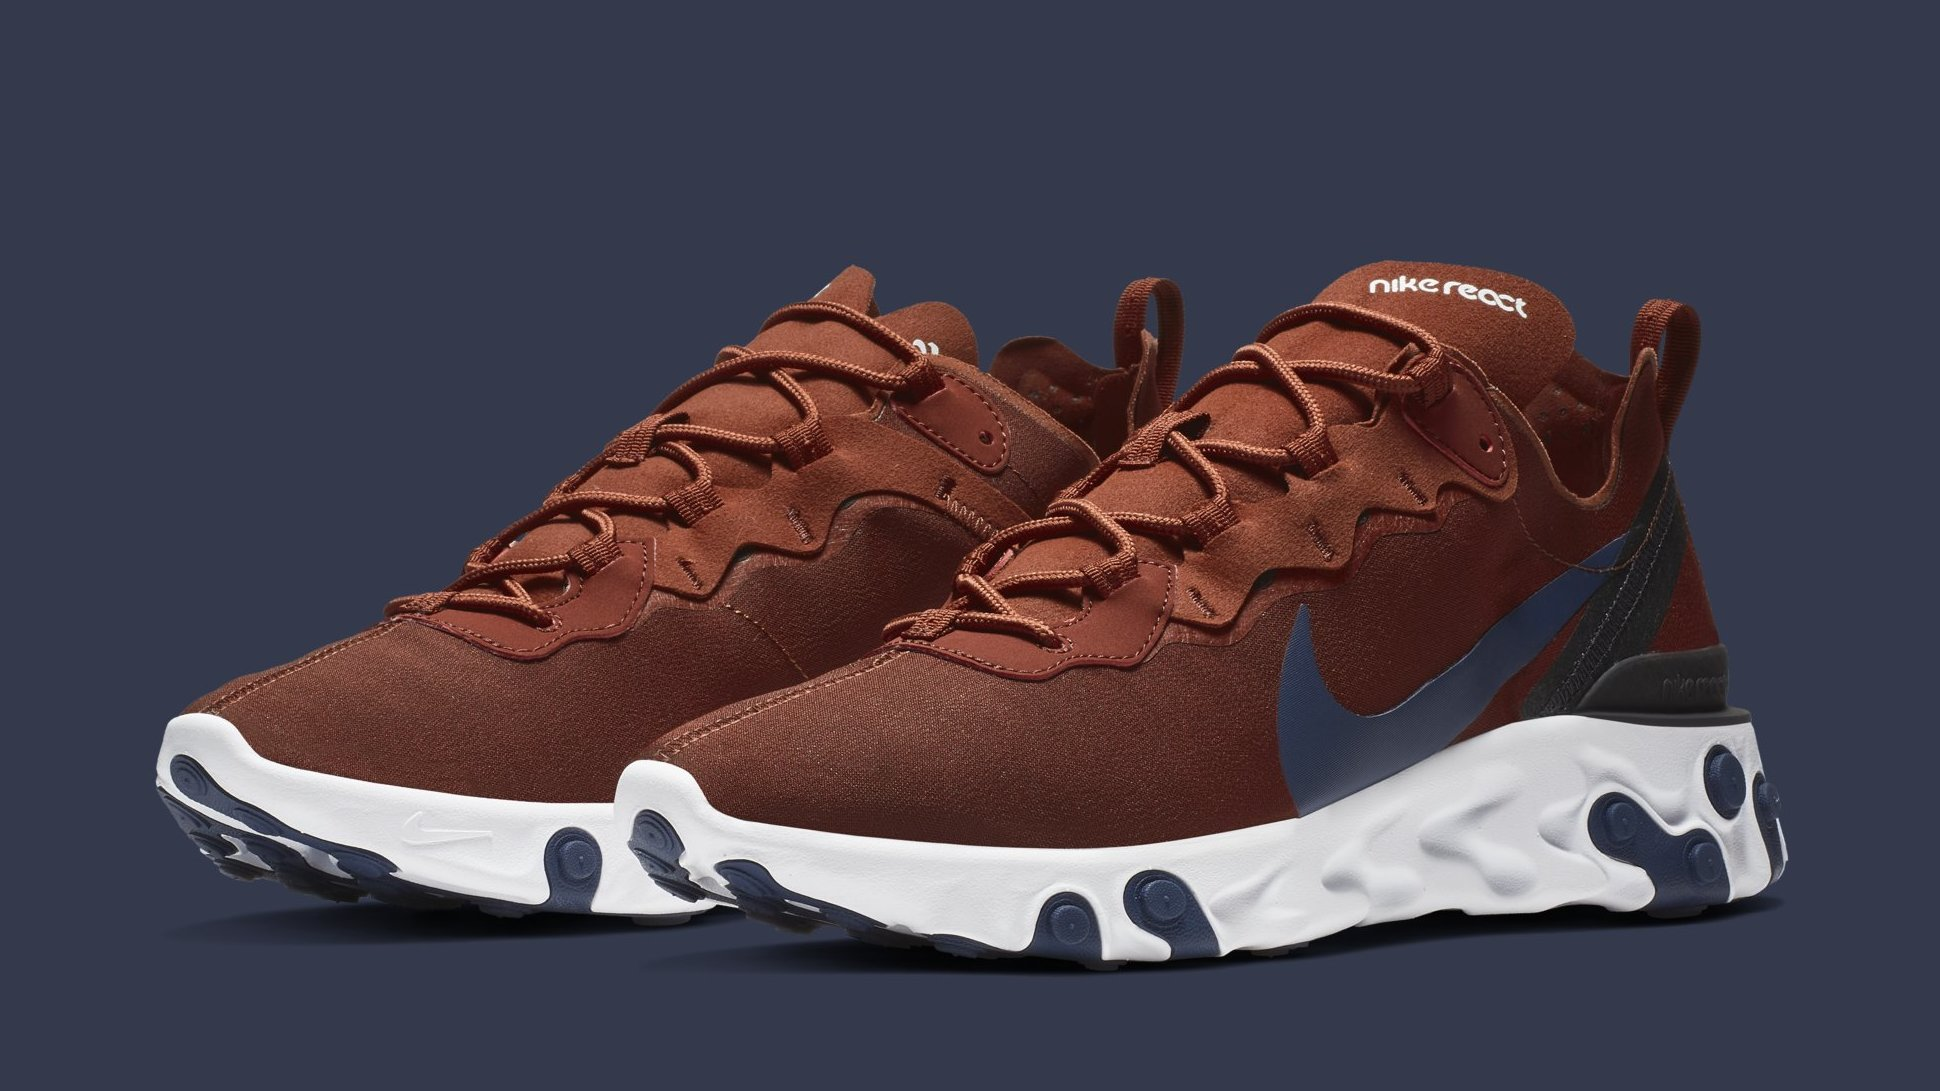 Nike React Element 55 Brown BQ6166 600 Release Date